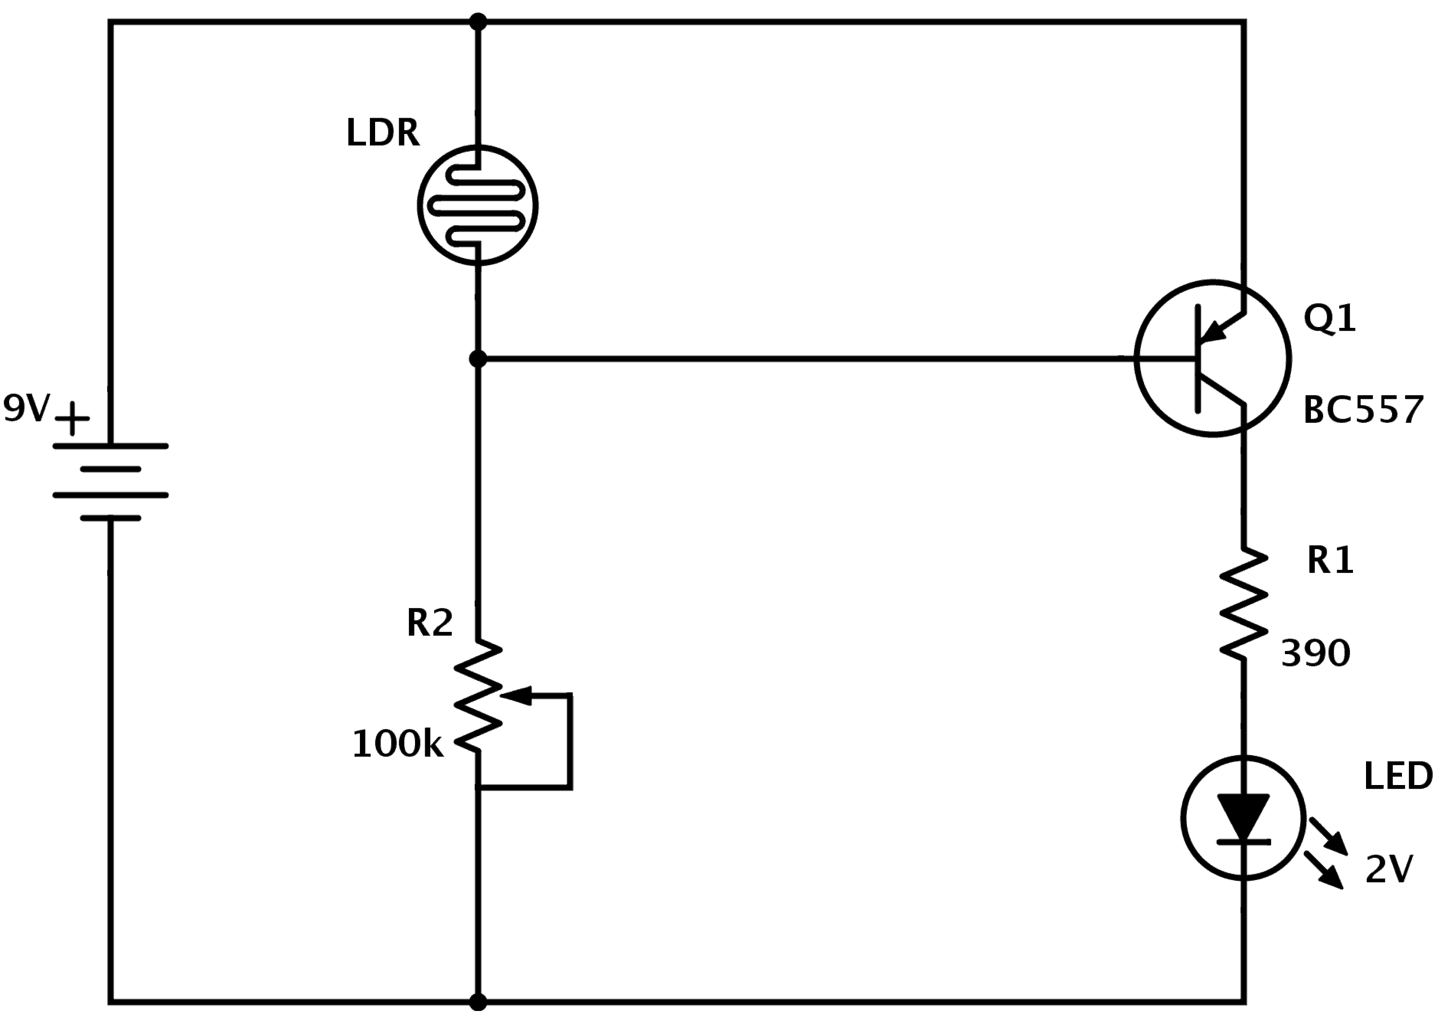 Ldr Circuit Diagram Build Electronic Circuits Schematic Of Basic Strobe With Pnp Transistor Dark Detector